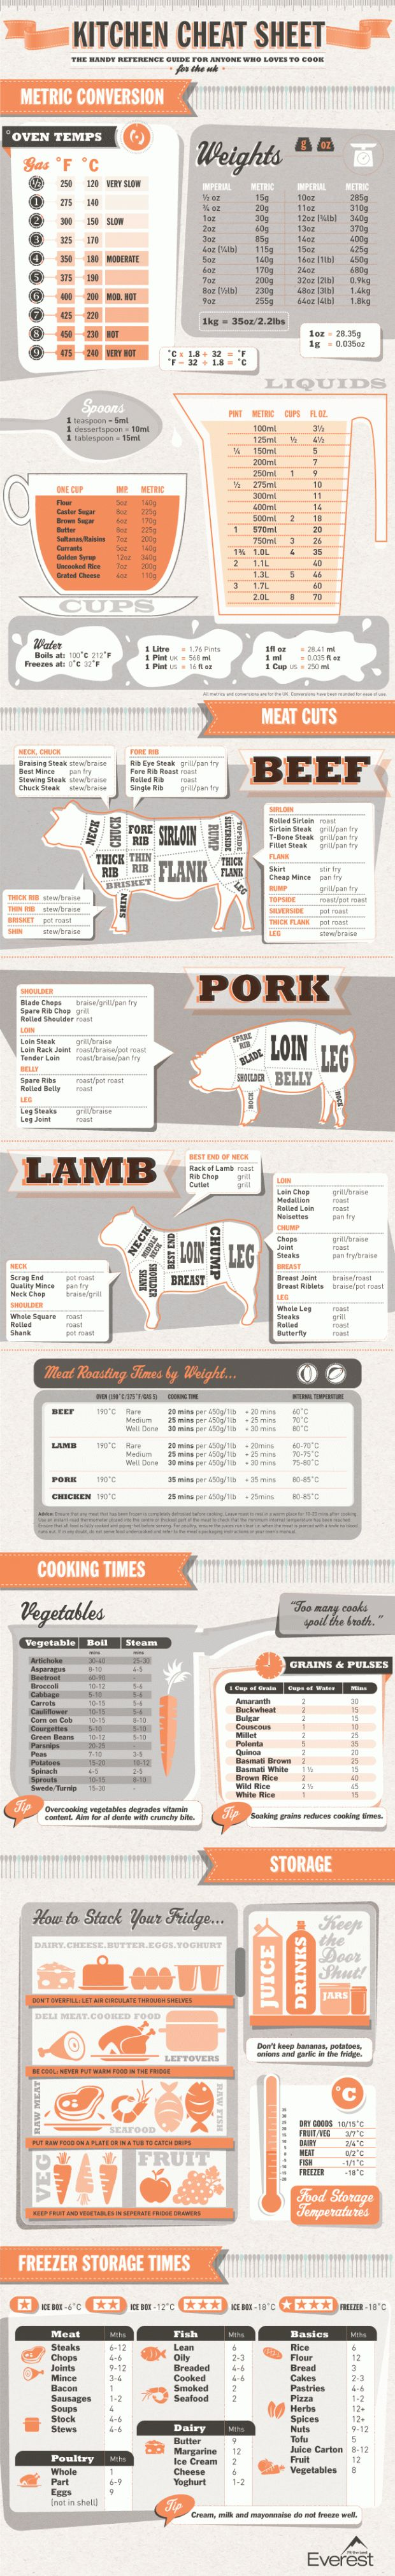 Kitchen Cheat Sheet [infographic]